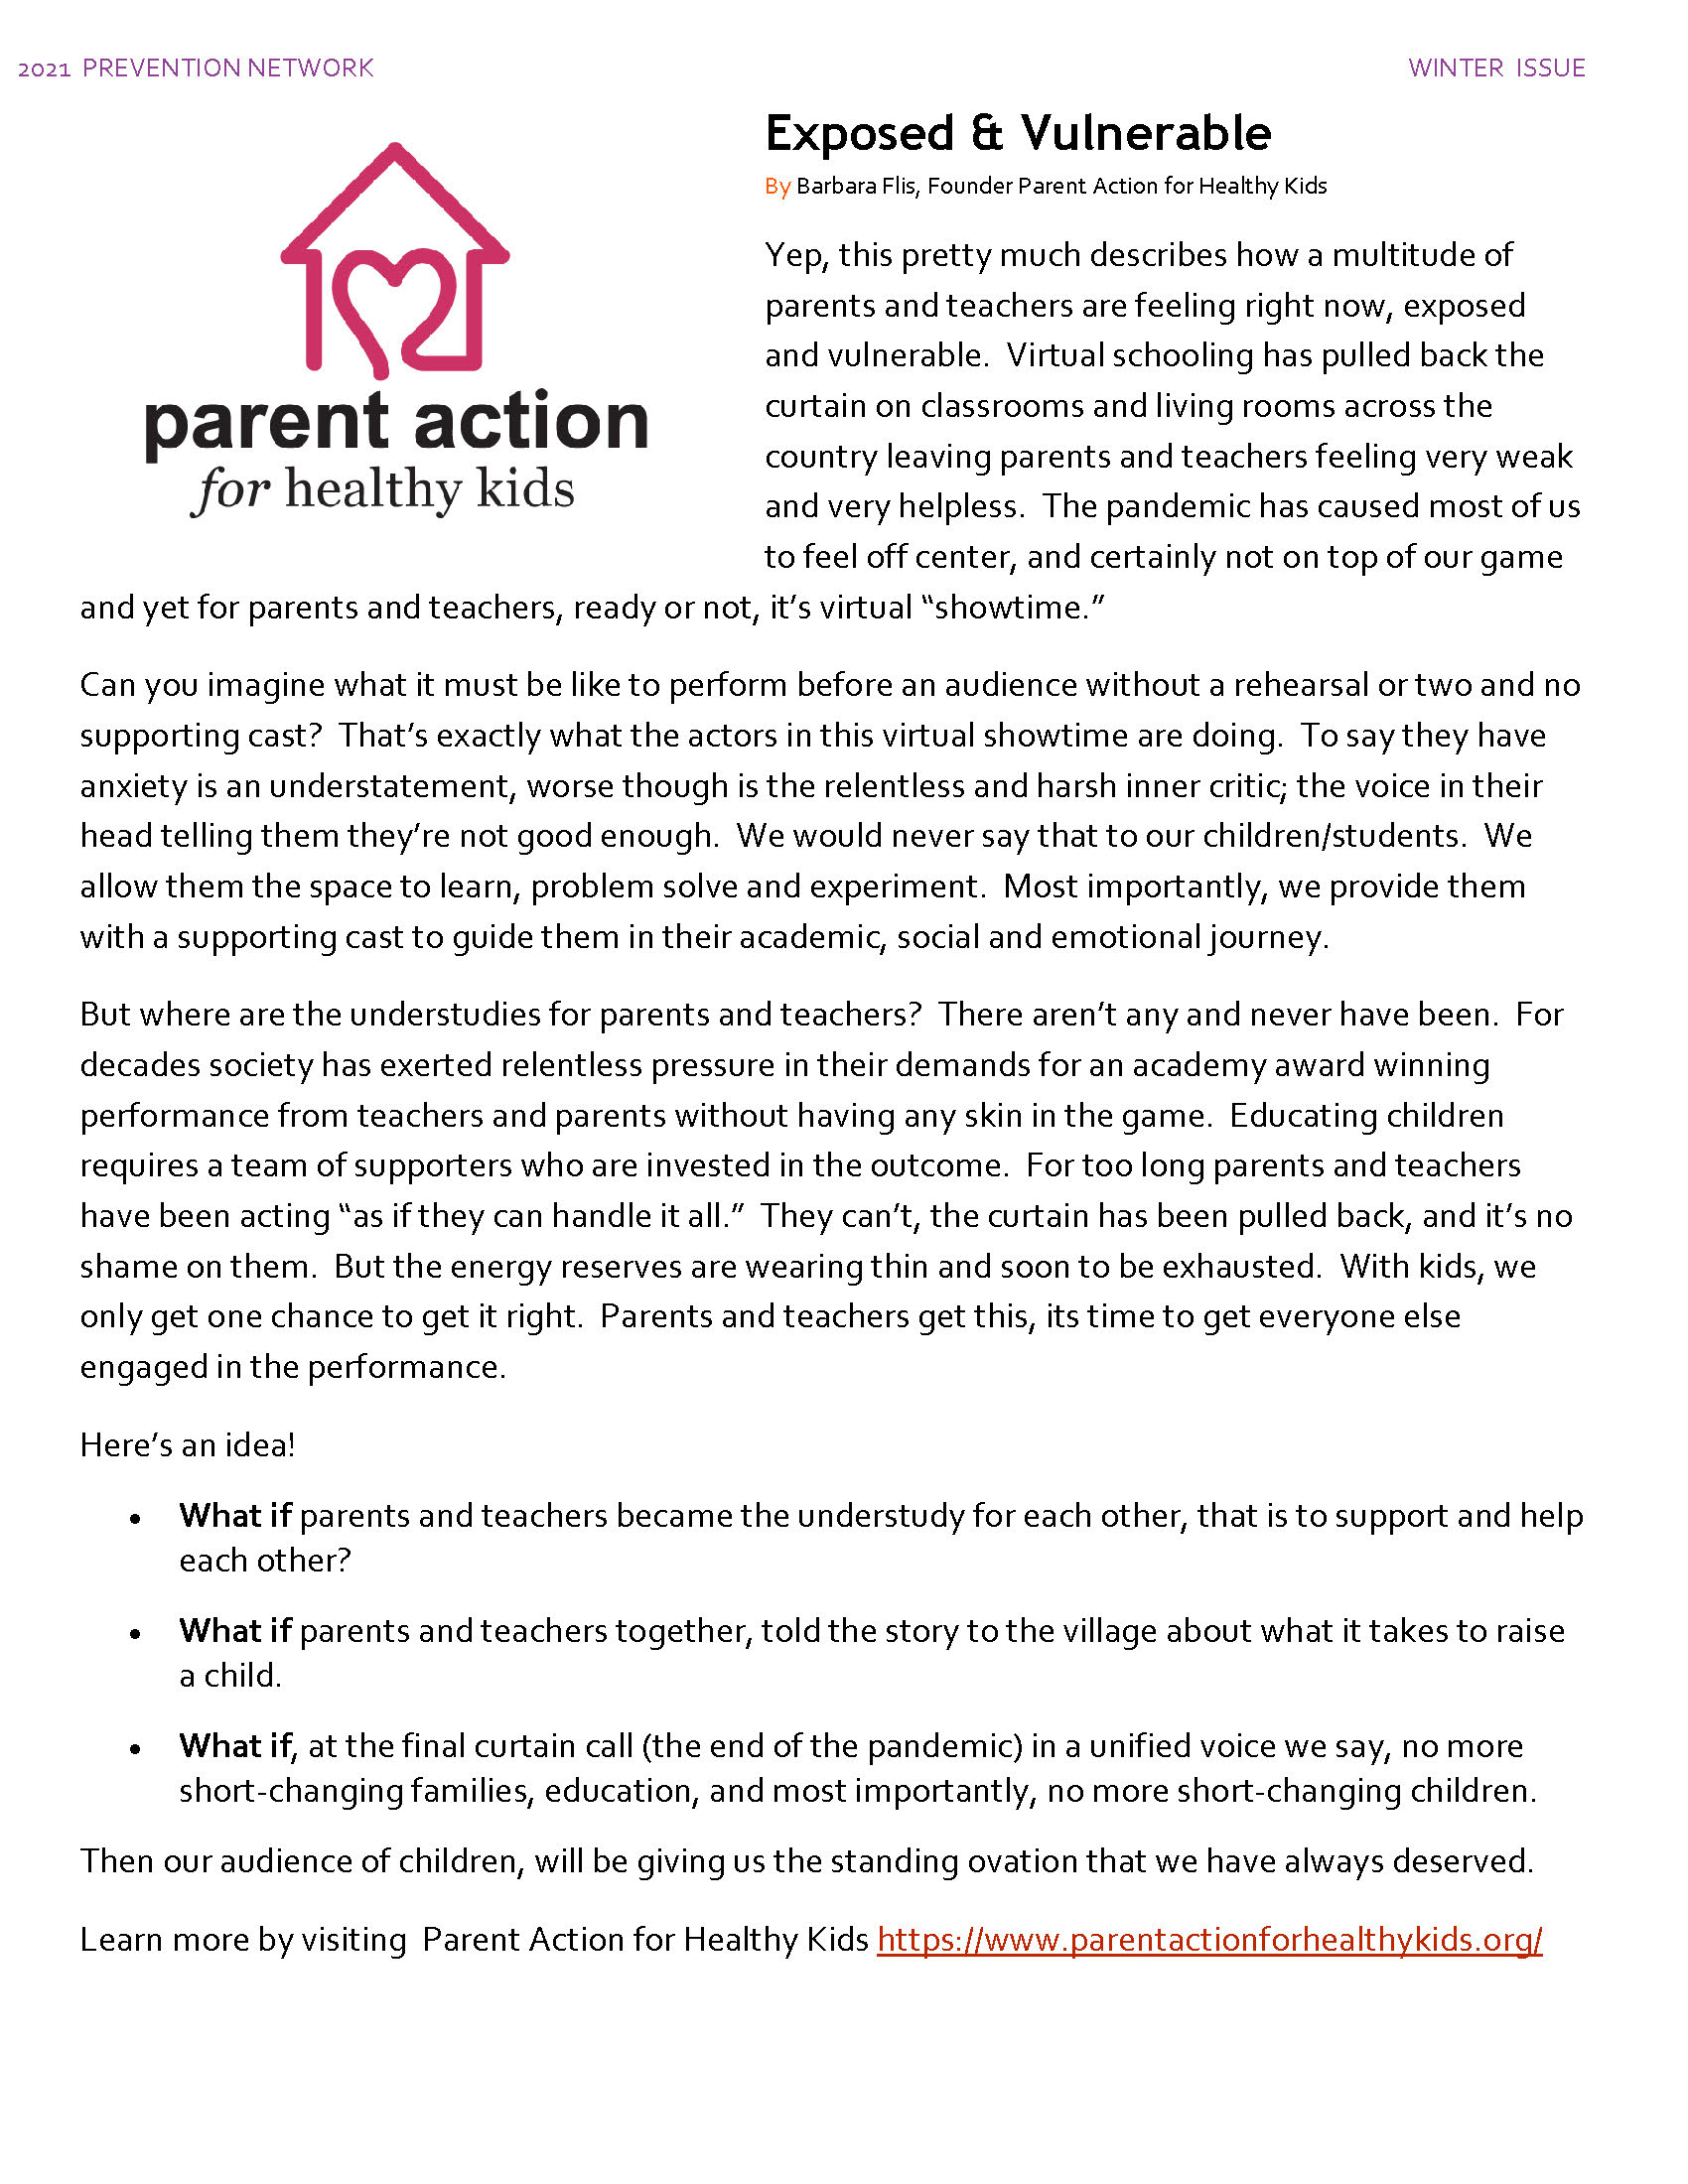 Parent Action for Healthy Kids Article